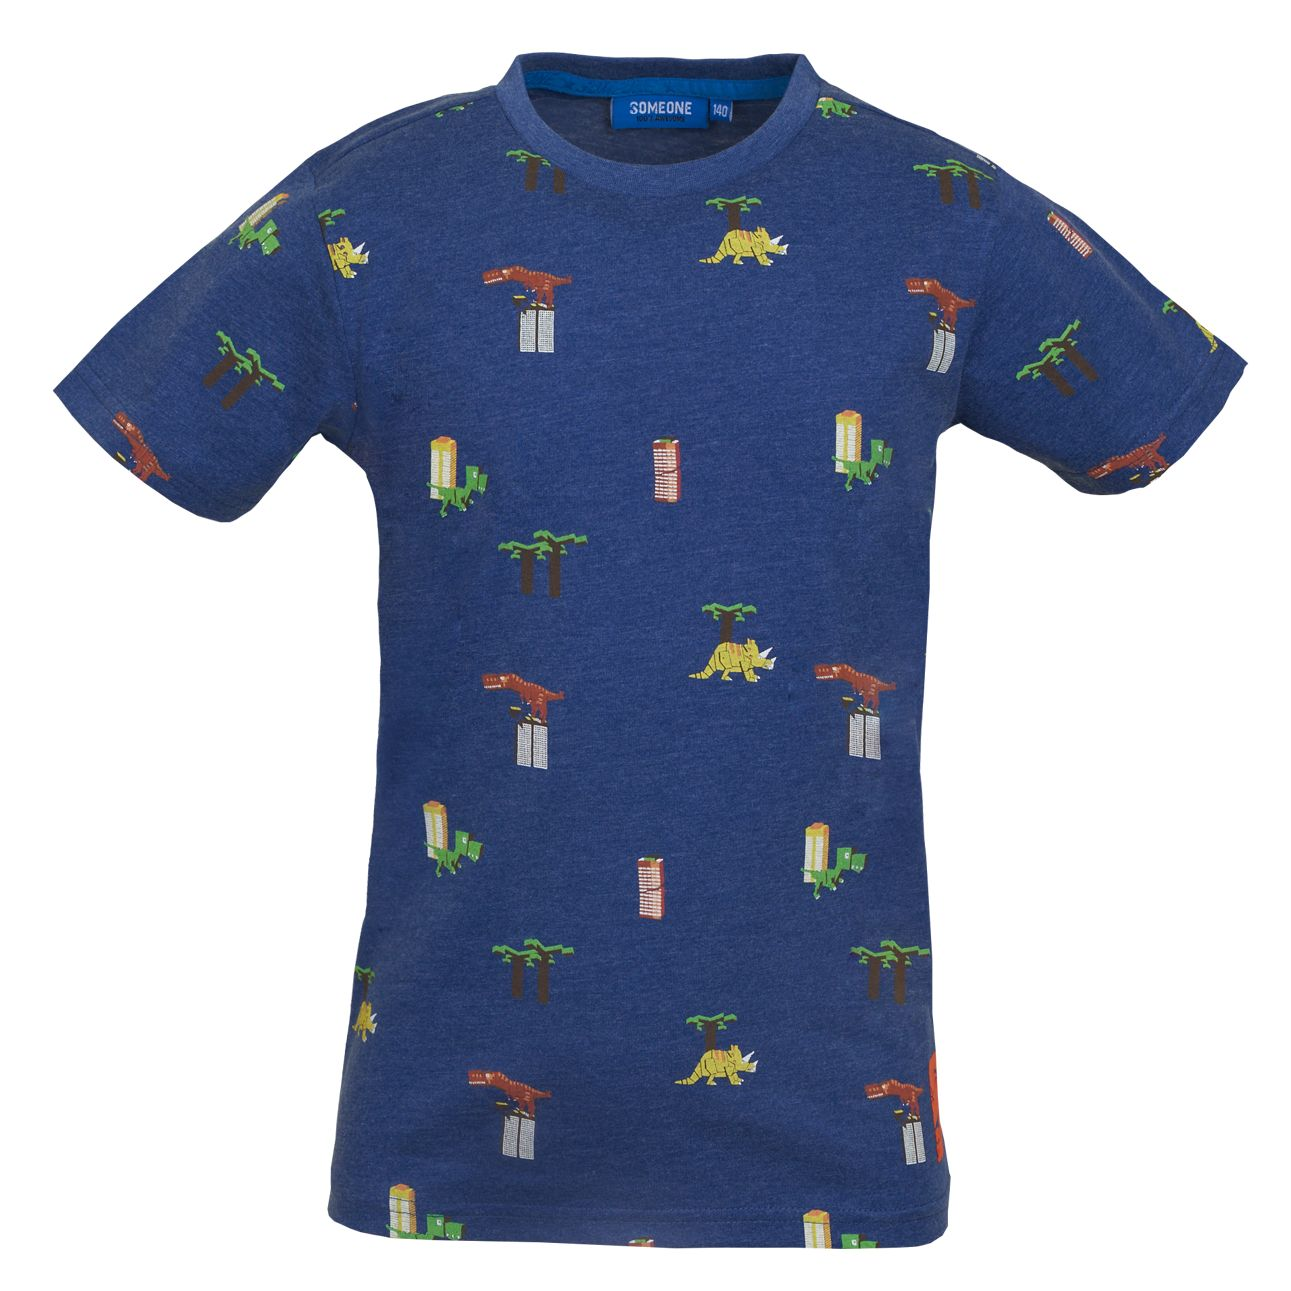 T-Shirt Dinos 104 Blue SOMEONE 100% Awesome